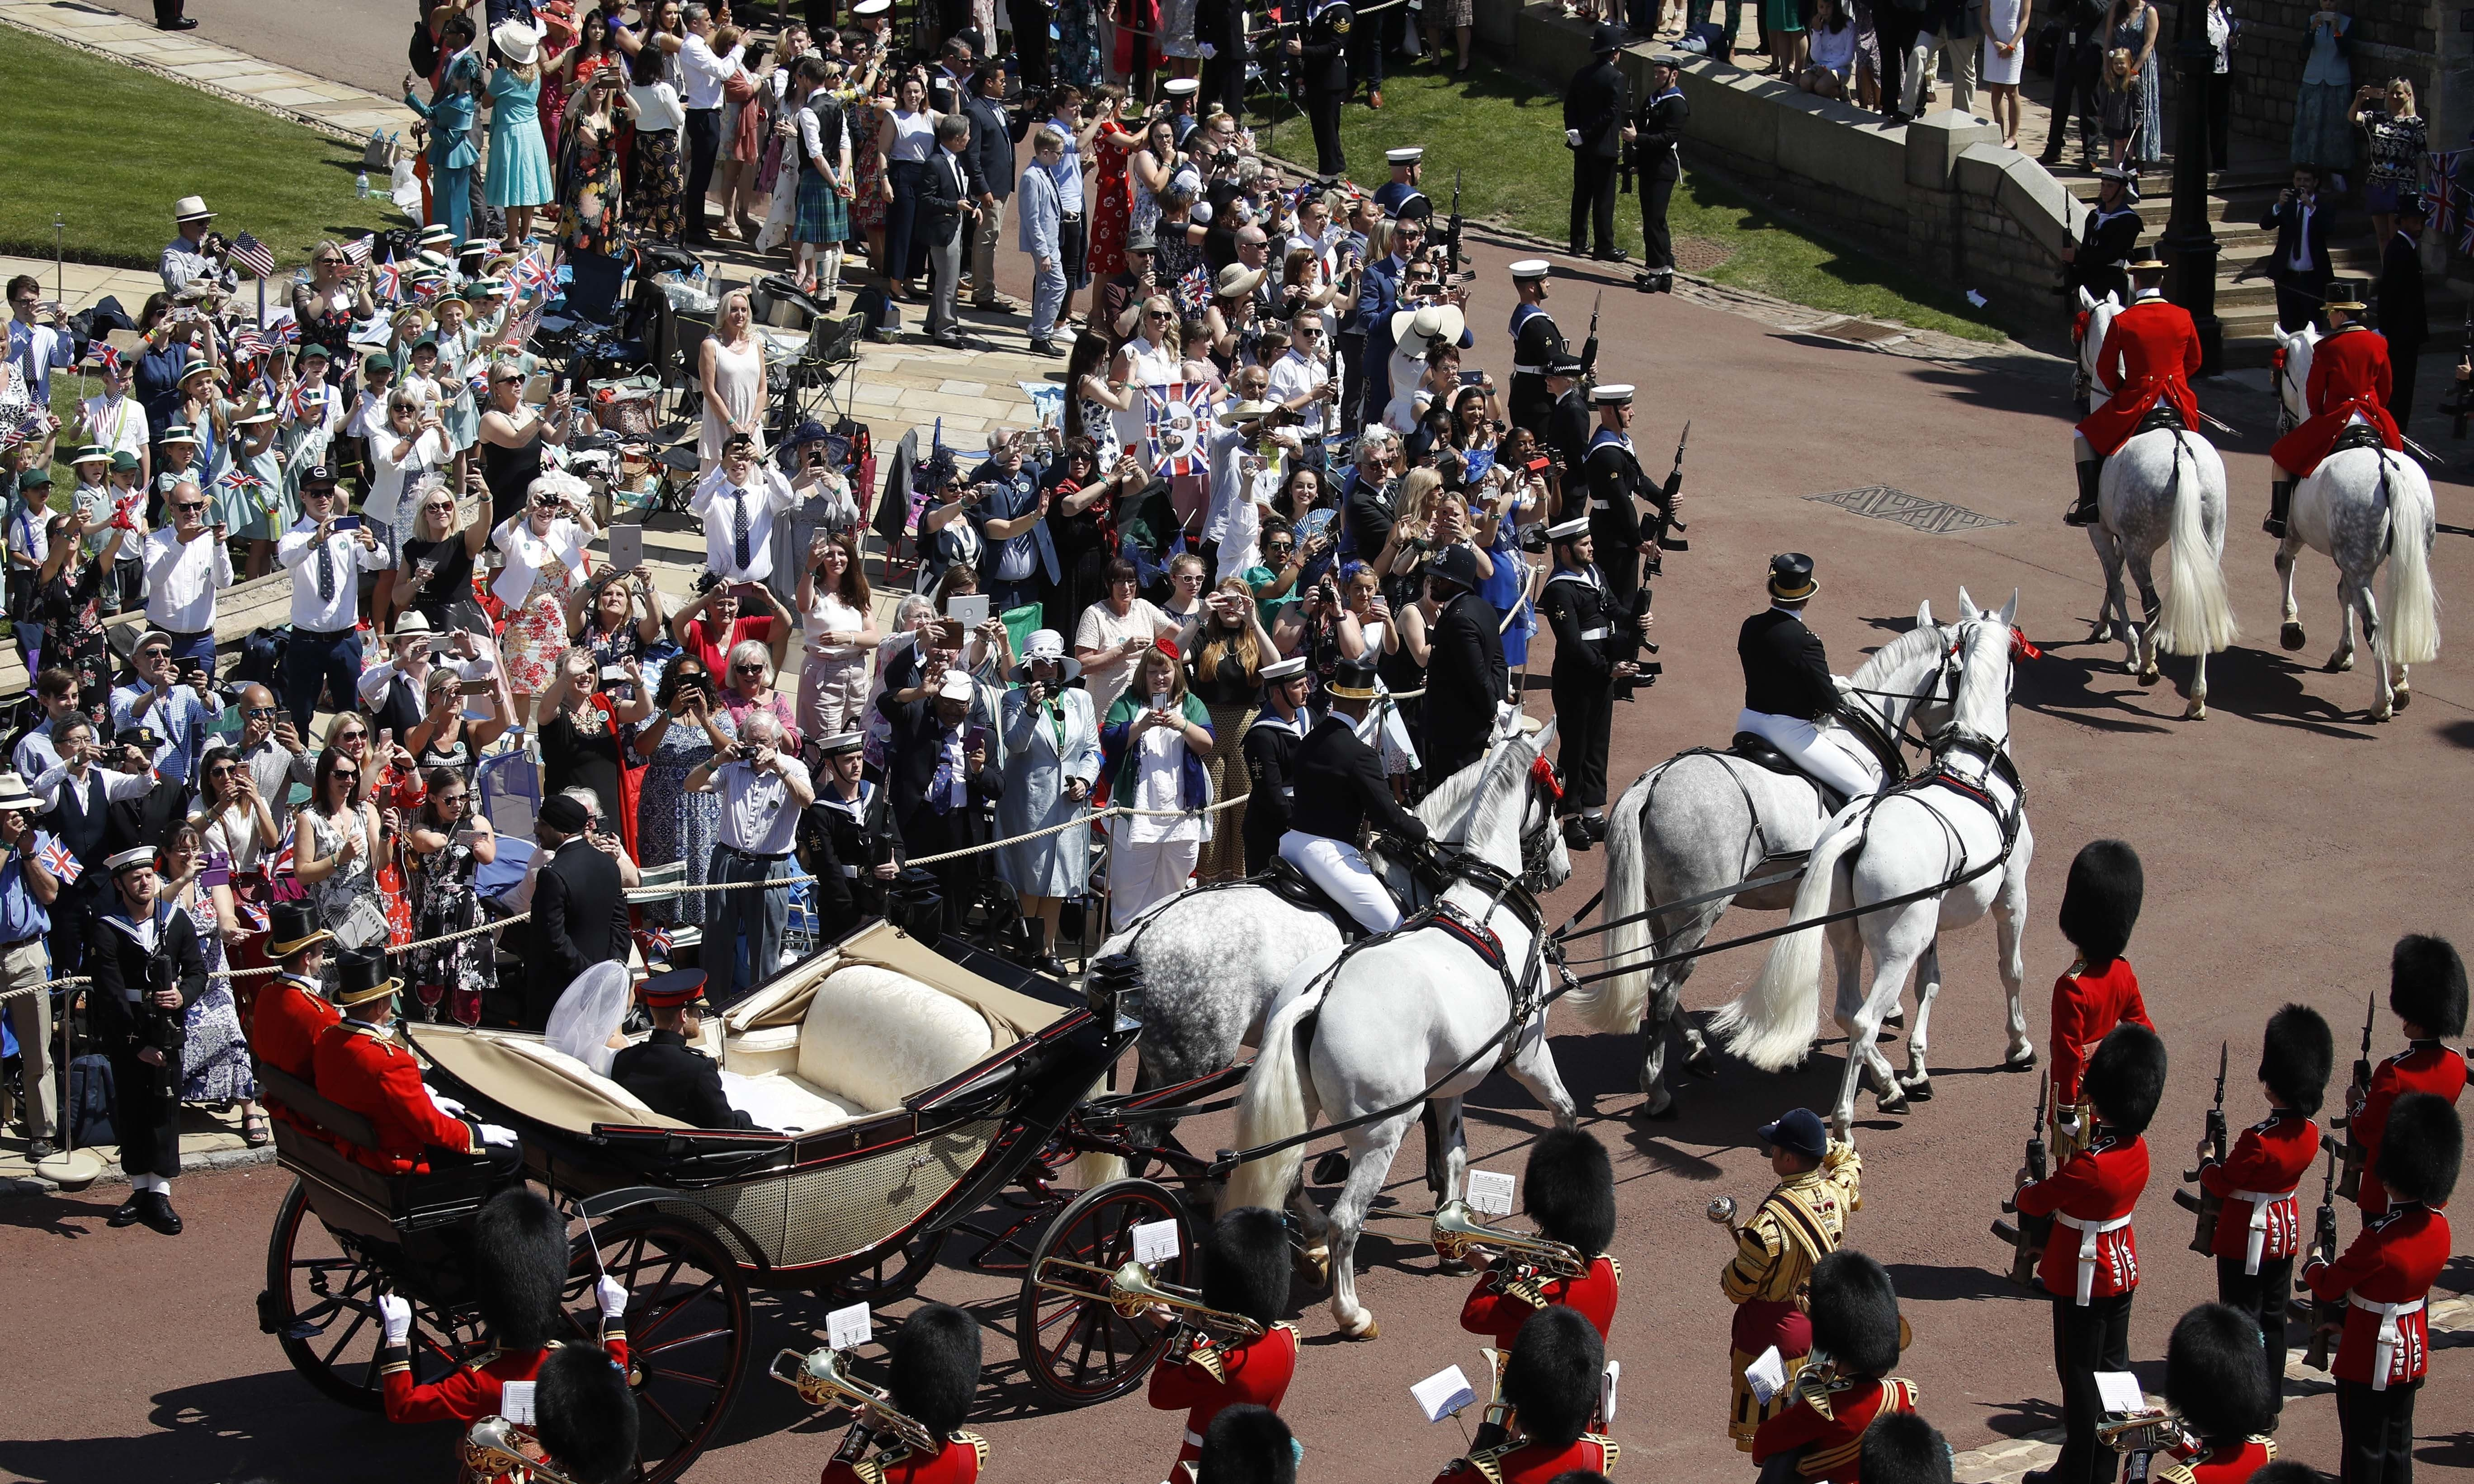 Prince Harry and Meghan Markle leave the chapel in a horse-drawn carriage. — AP